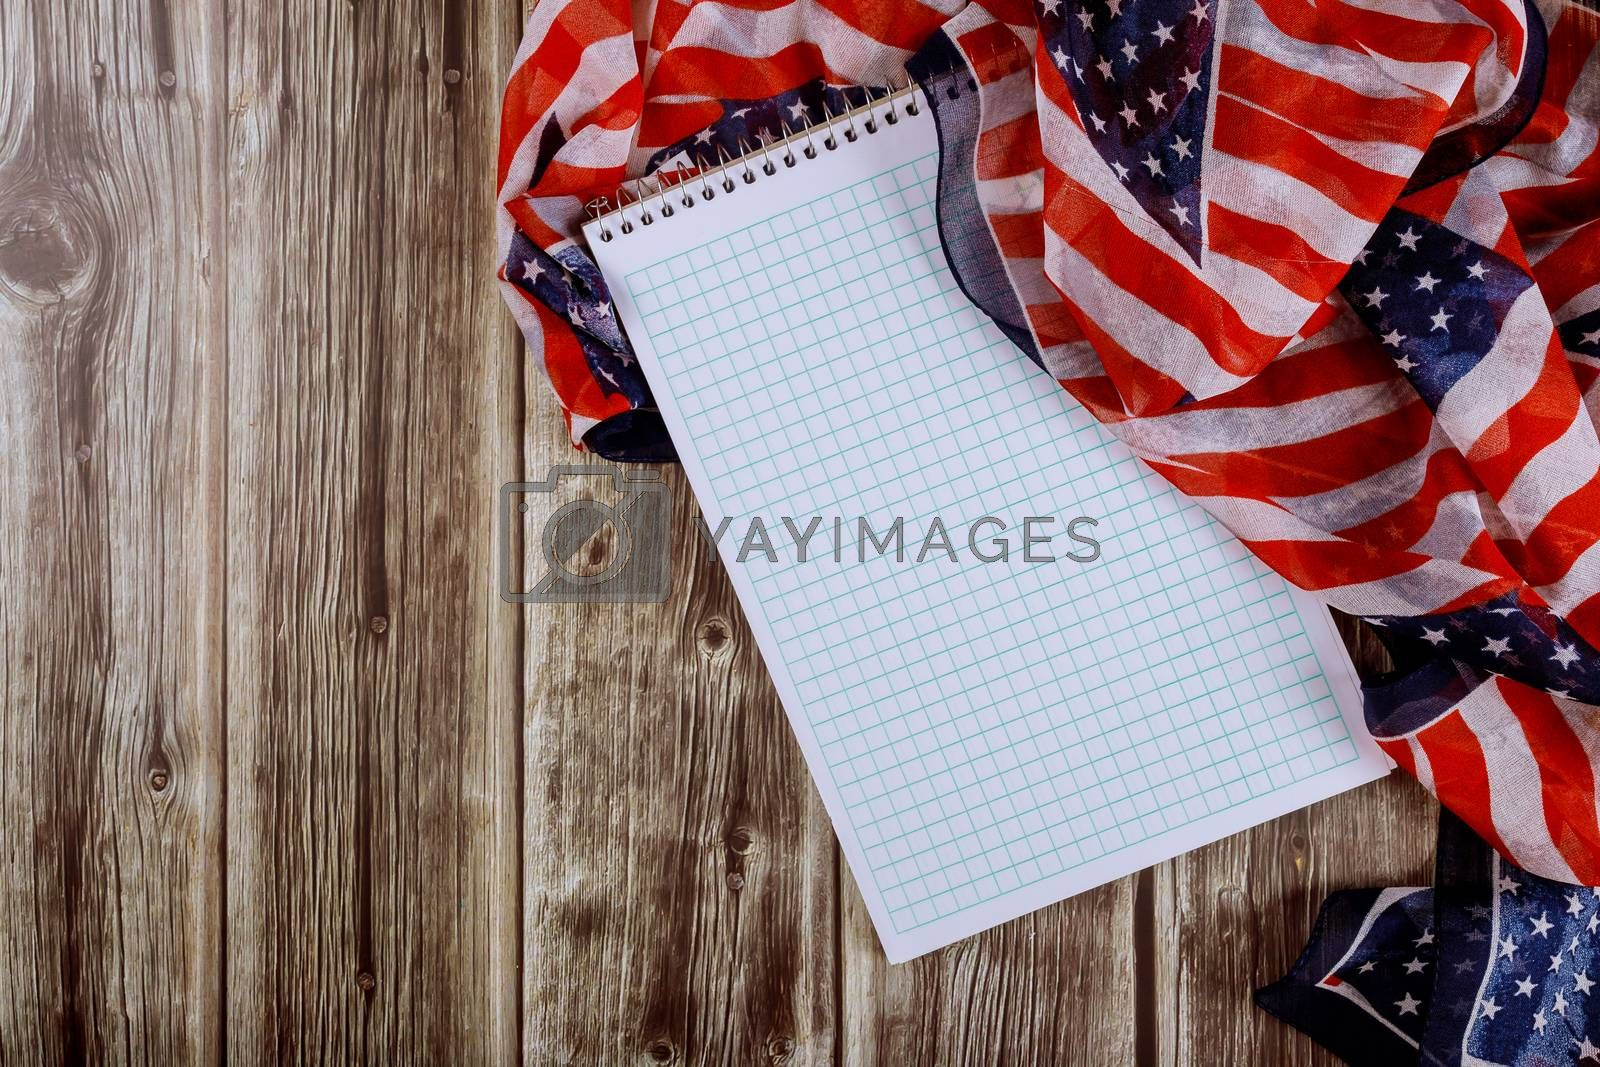 Beautifully waving star striped American flag with notebook on wood table for background